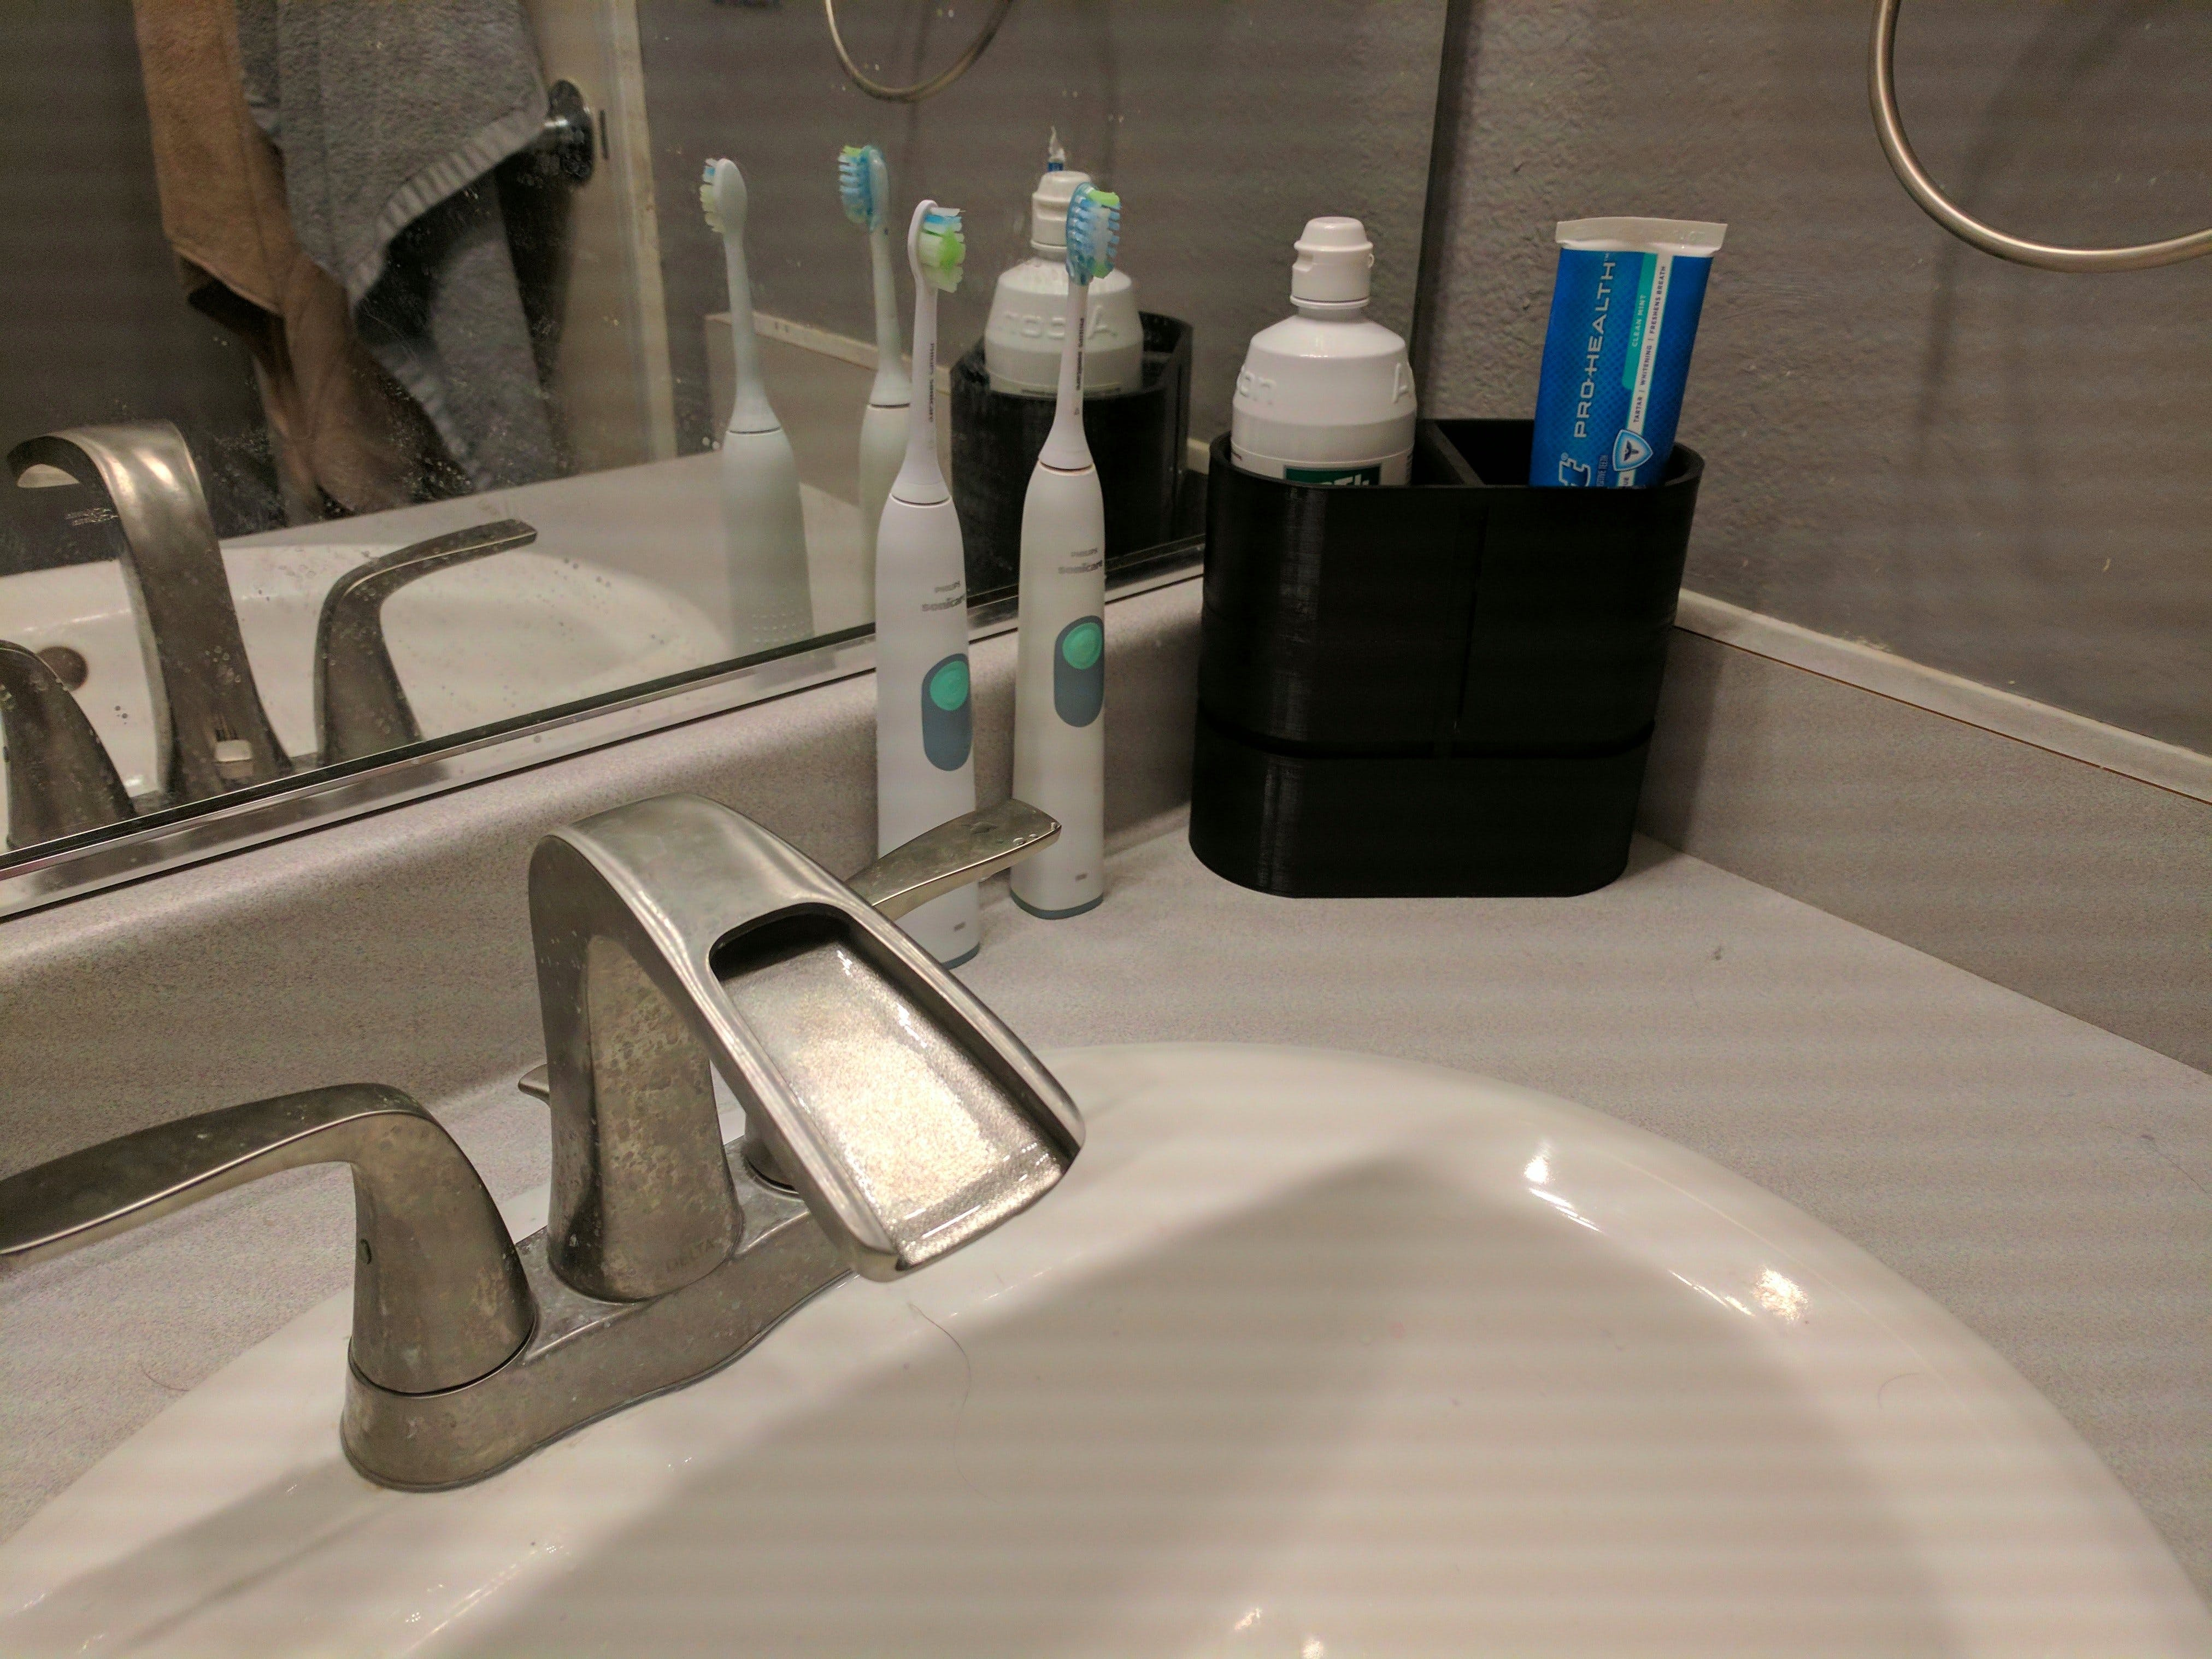 Internet of Toiletries